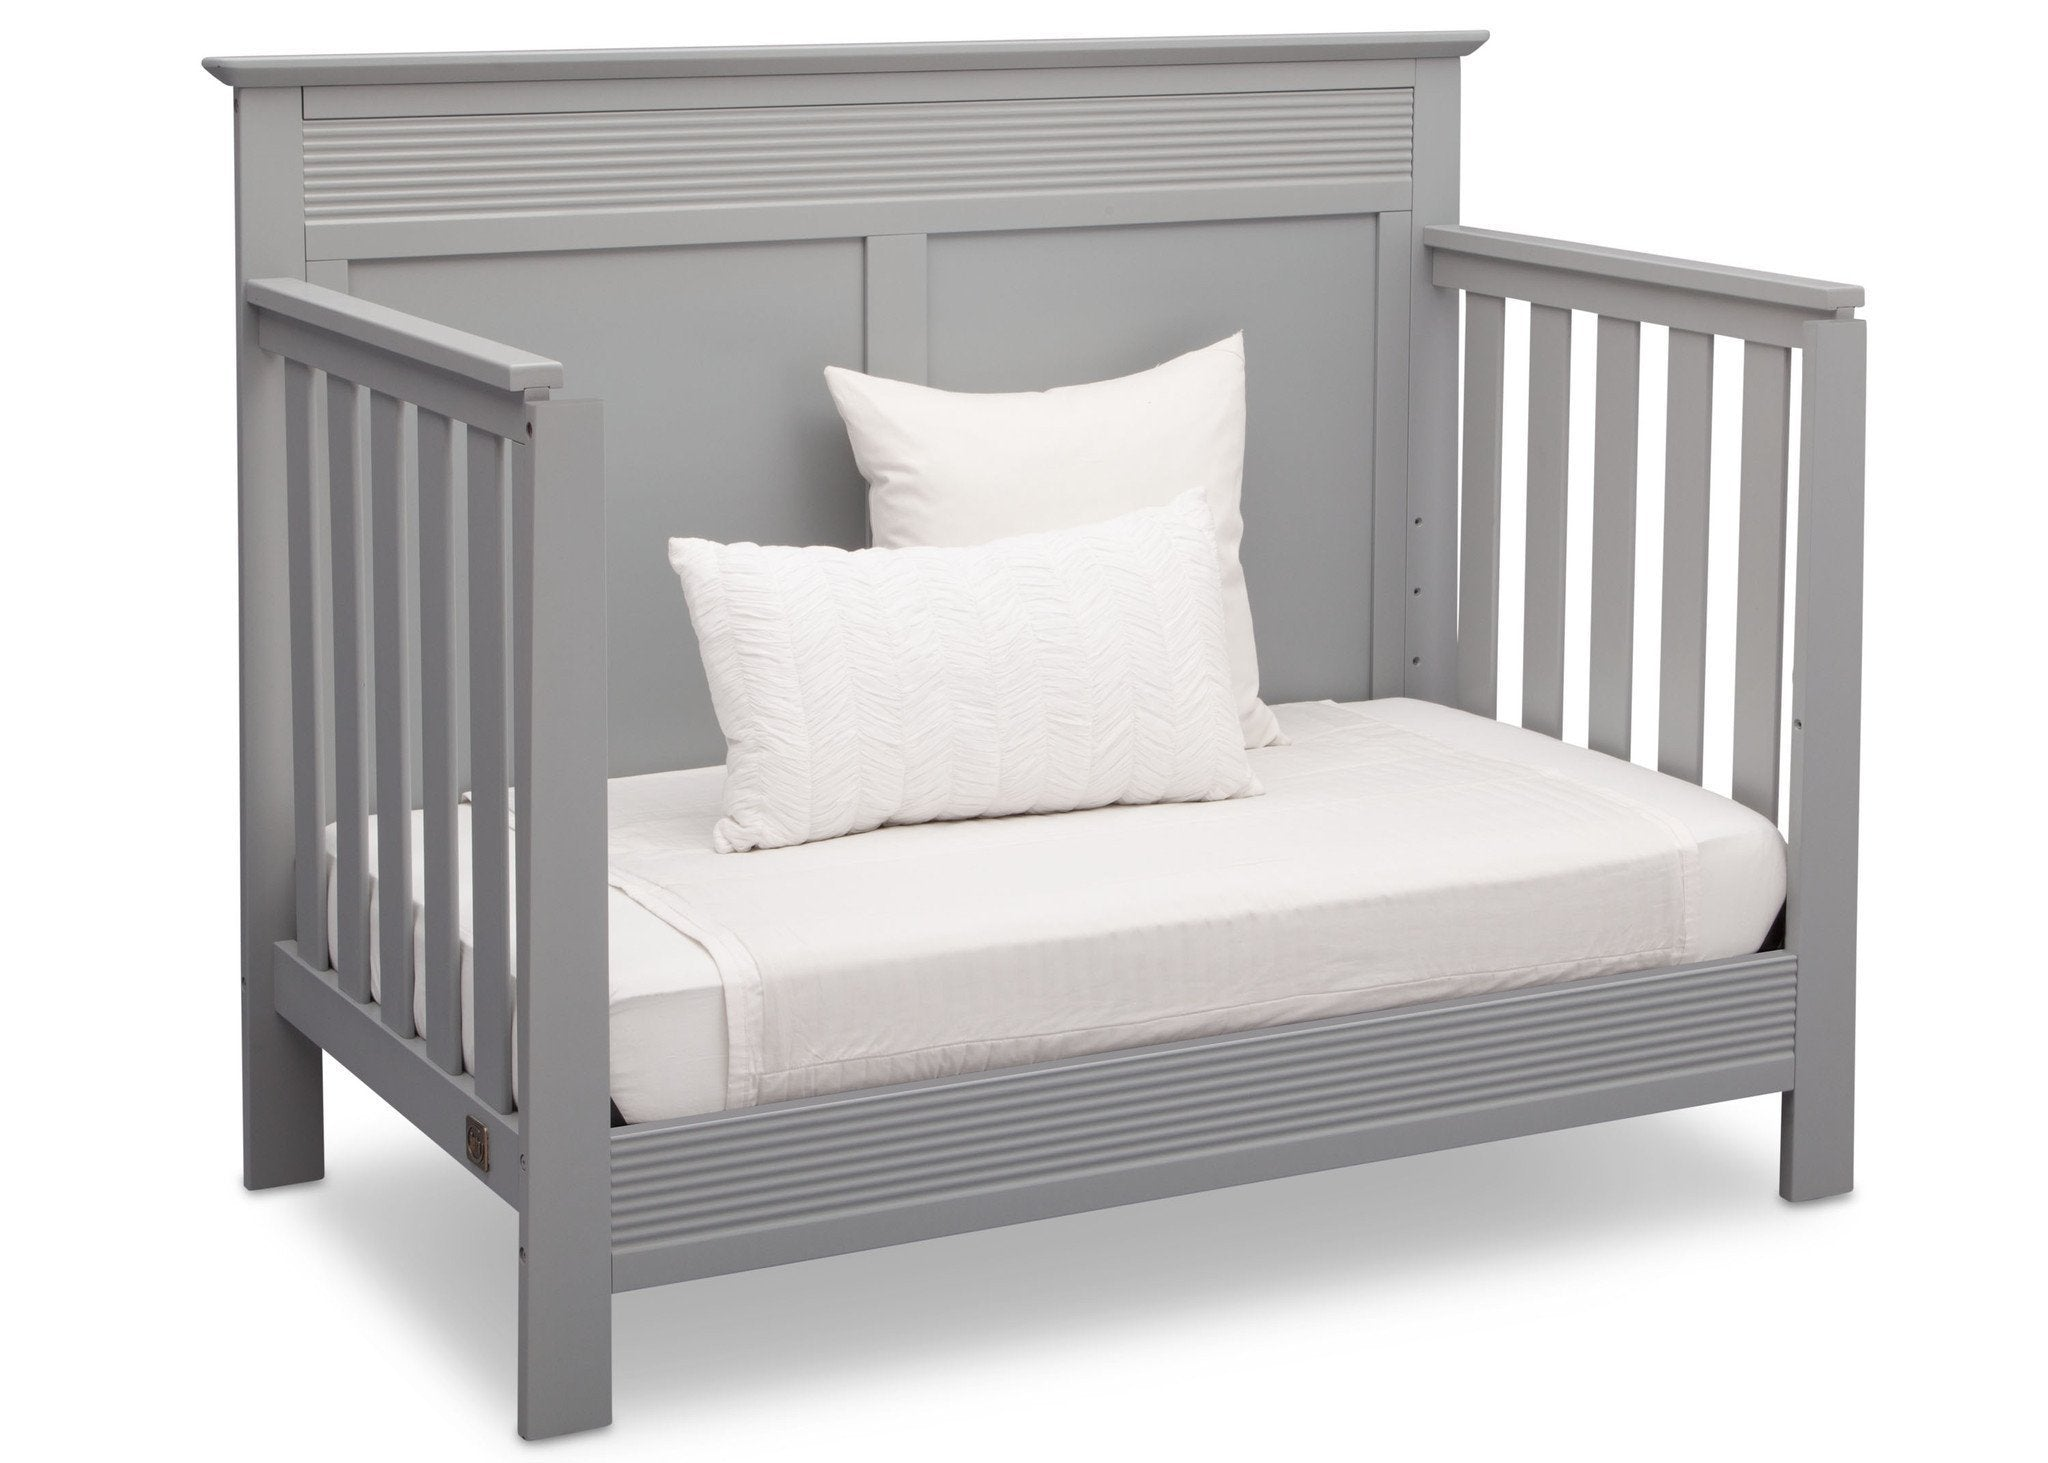 Serta Grey (026) Fall River 4-in-1 Convertible Crib, Right Daybed View a4a